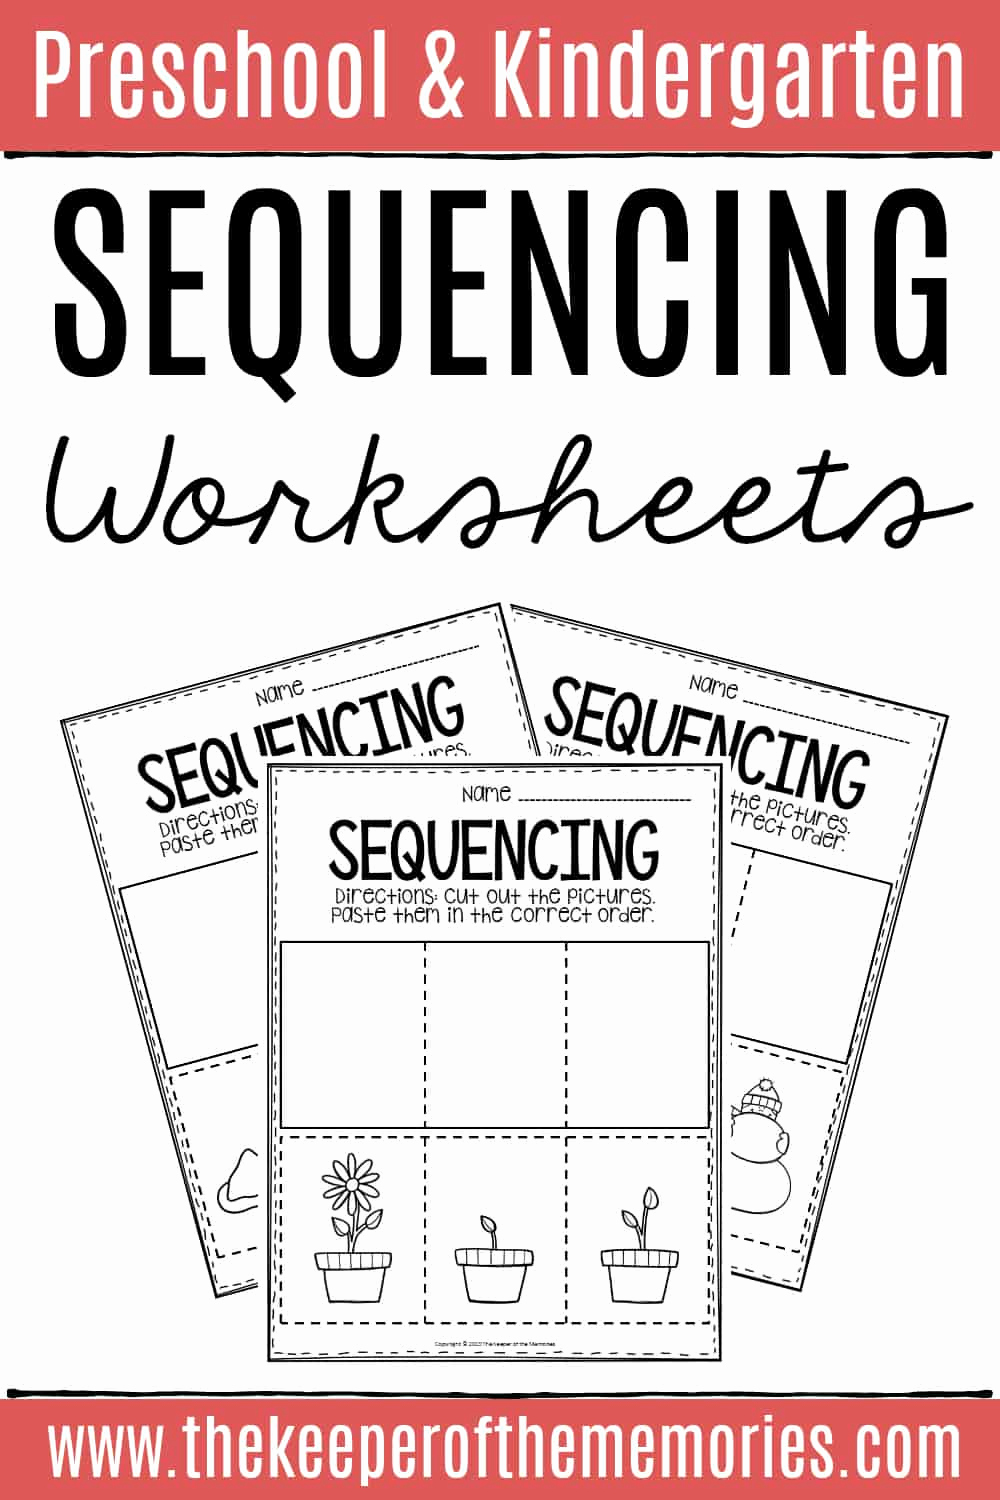 Order Of events Worksheets Unique Sequence Of events Worksheets the Keeper Of the Memories